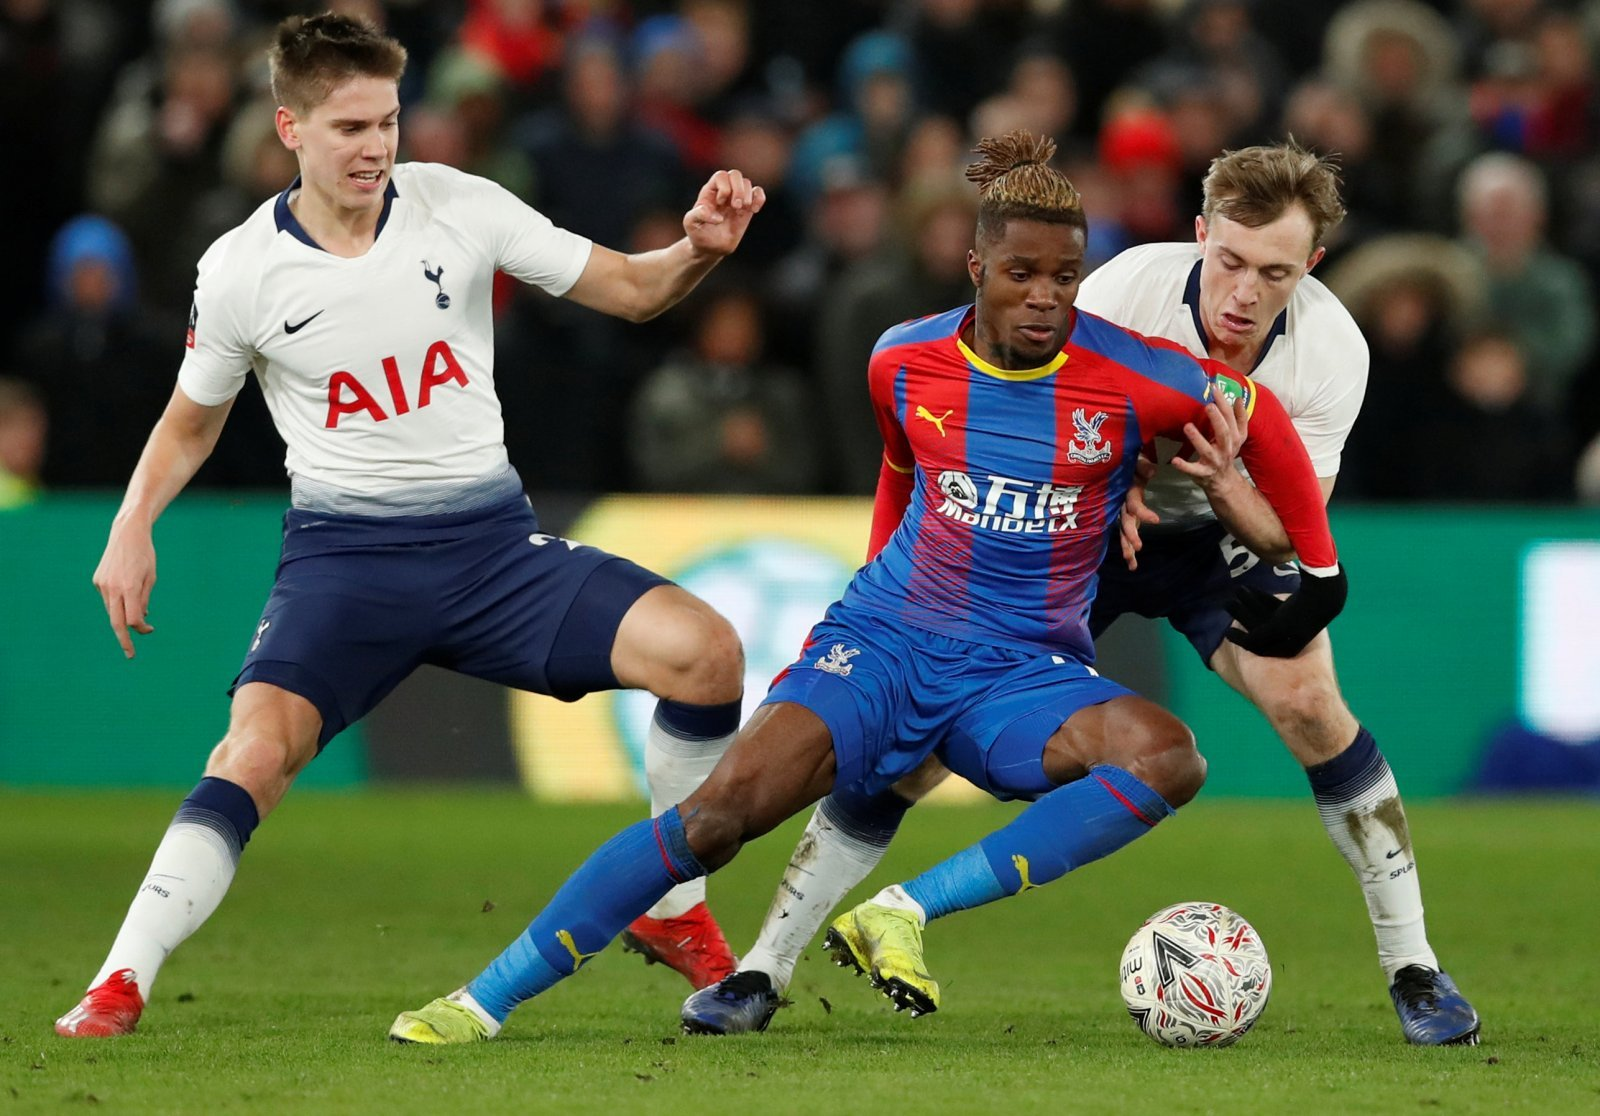 Crystal Palace: Wilfried Zaha may have 'beef' with Steve Parish, but not with fans